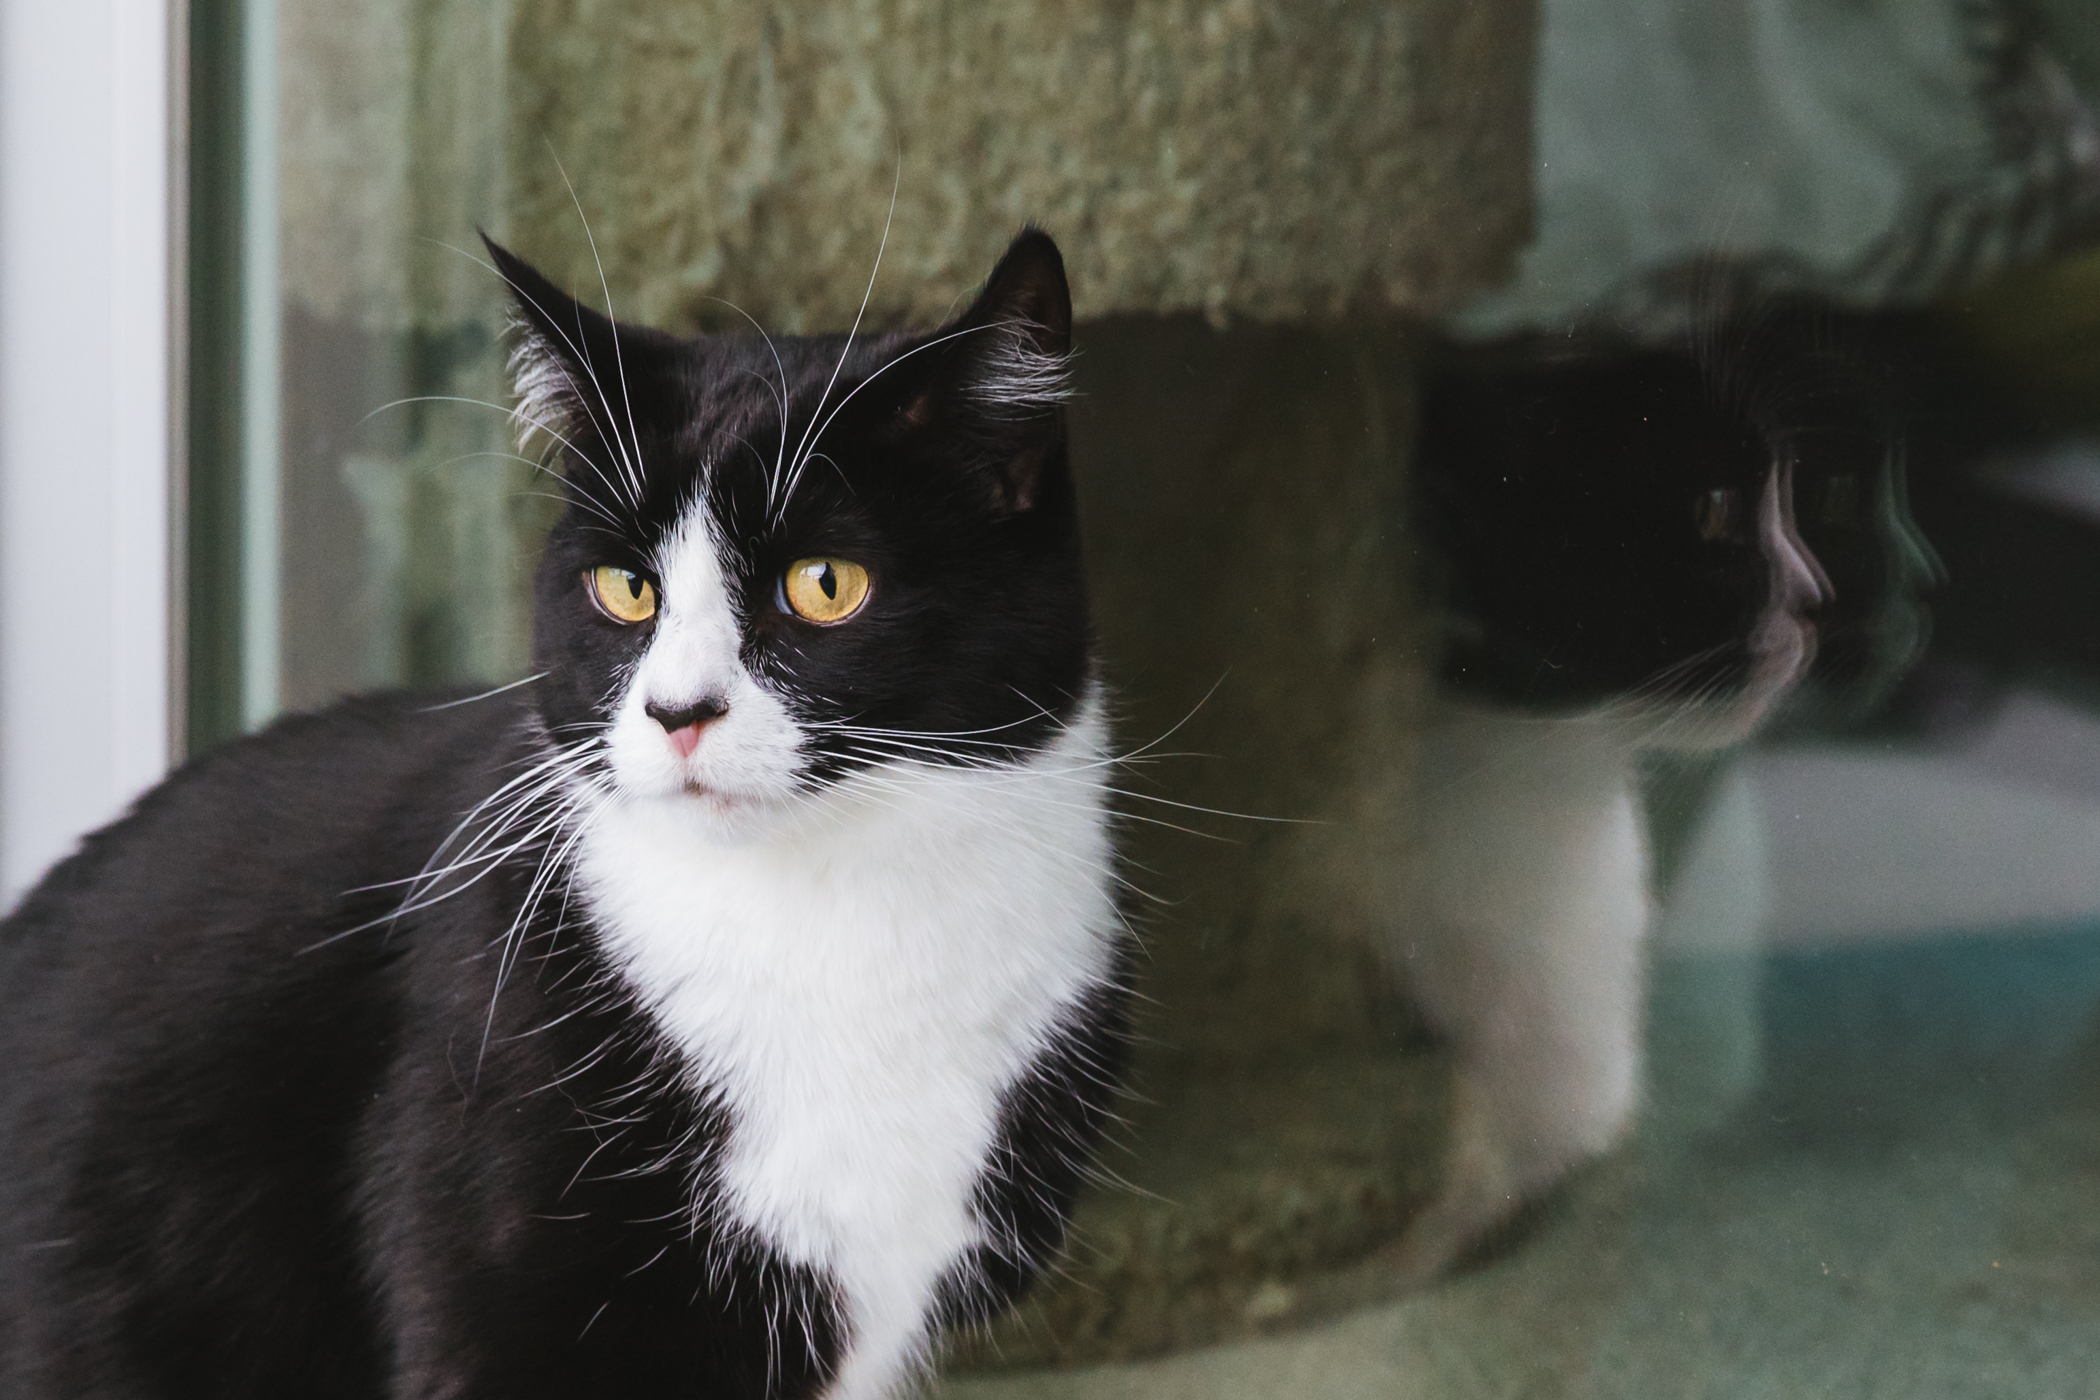 "Miss Dottie is a 6-year-old black and white tuxedo rescue, who loves to play fetch, get brushed and attention but ONLY on her terms. She hates being left alone, and having her meals served late.{&nbsp;}<a  href=""http://seattlerefined.com/ruffined"" target=""_blank"" title=""http://seattlerefined.com/ruffined"">The RUFFined Spotlight</a>{&nbsp;}is a weekly profile of local pets living and loving life in the PNW. If you or someone you know has a pet you'd like featured, email us at{&nbsp;}<a  href=""mailto:hello@seattlerefined.com"" target=""_blank"" title=""mailto:hello@seattlerefined.com"">hello@seattlerefined.com</a>, and your furbaby could be the next spotlighted! (Image: Sunita Martini / Seattle Refined)"